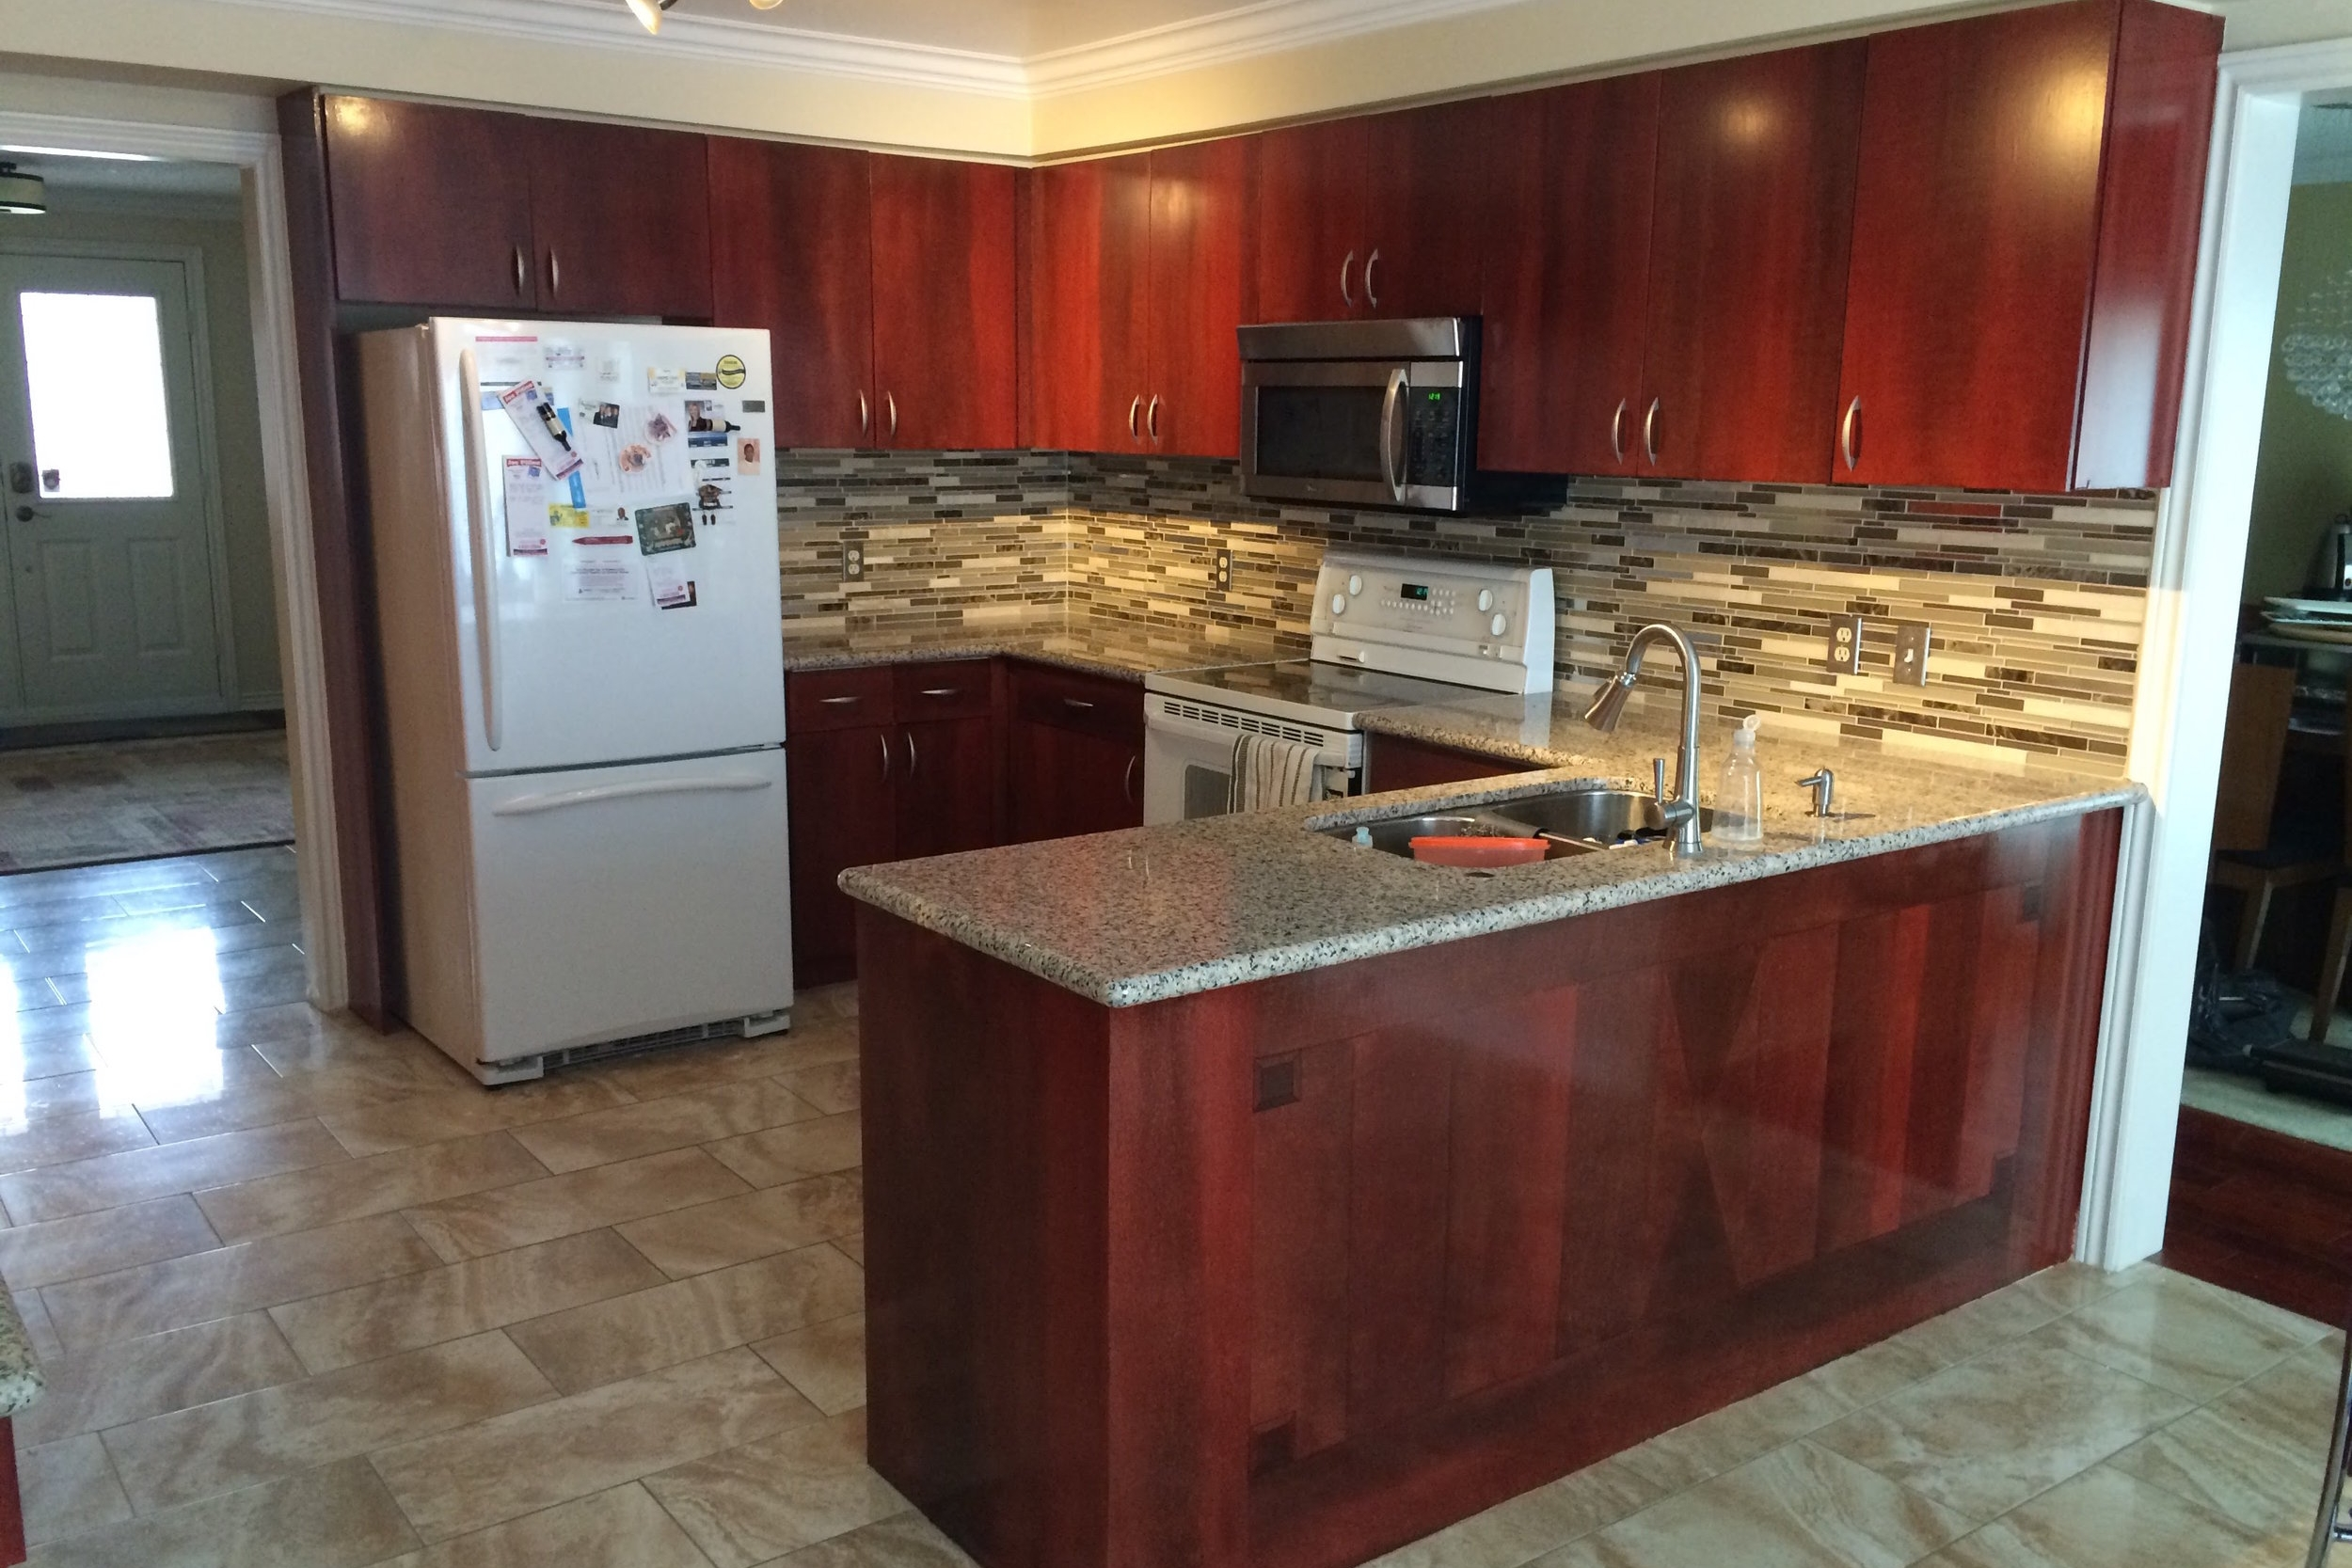 Cabinet Refinishing - You will be surprised by how much of a difference repainting your kitchen makes.  We paint cabinets on location with either oil or latex paint depending on your desired finish or product preference.